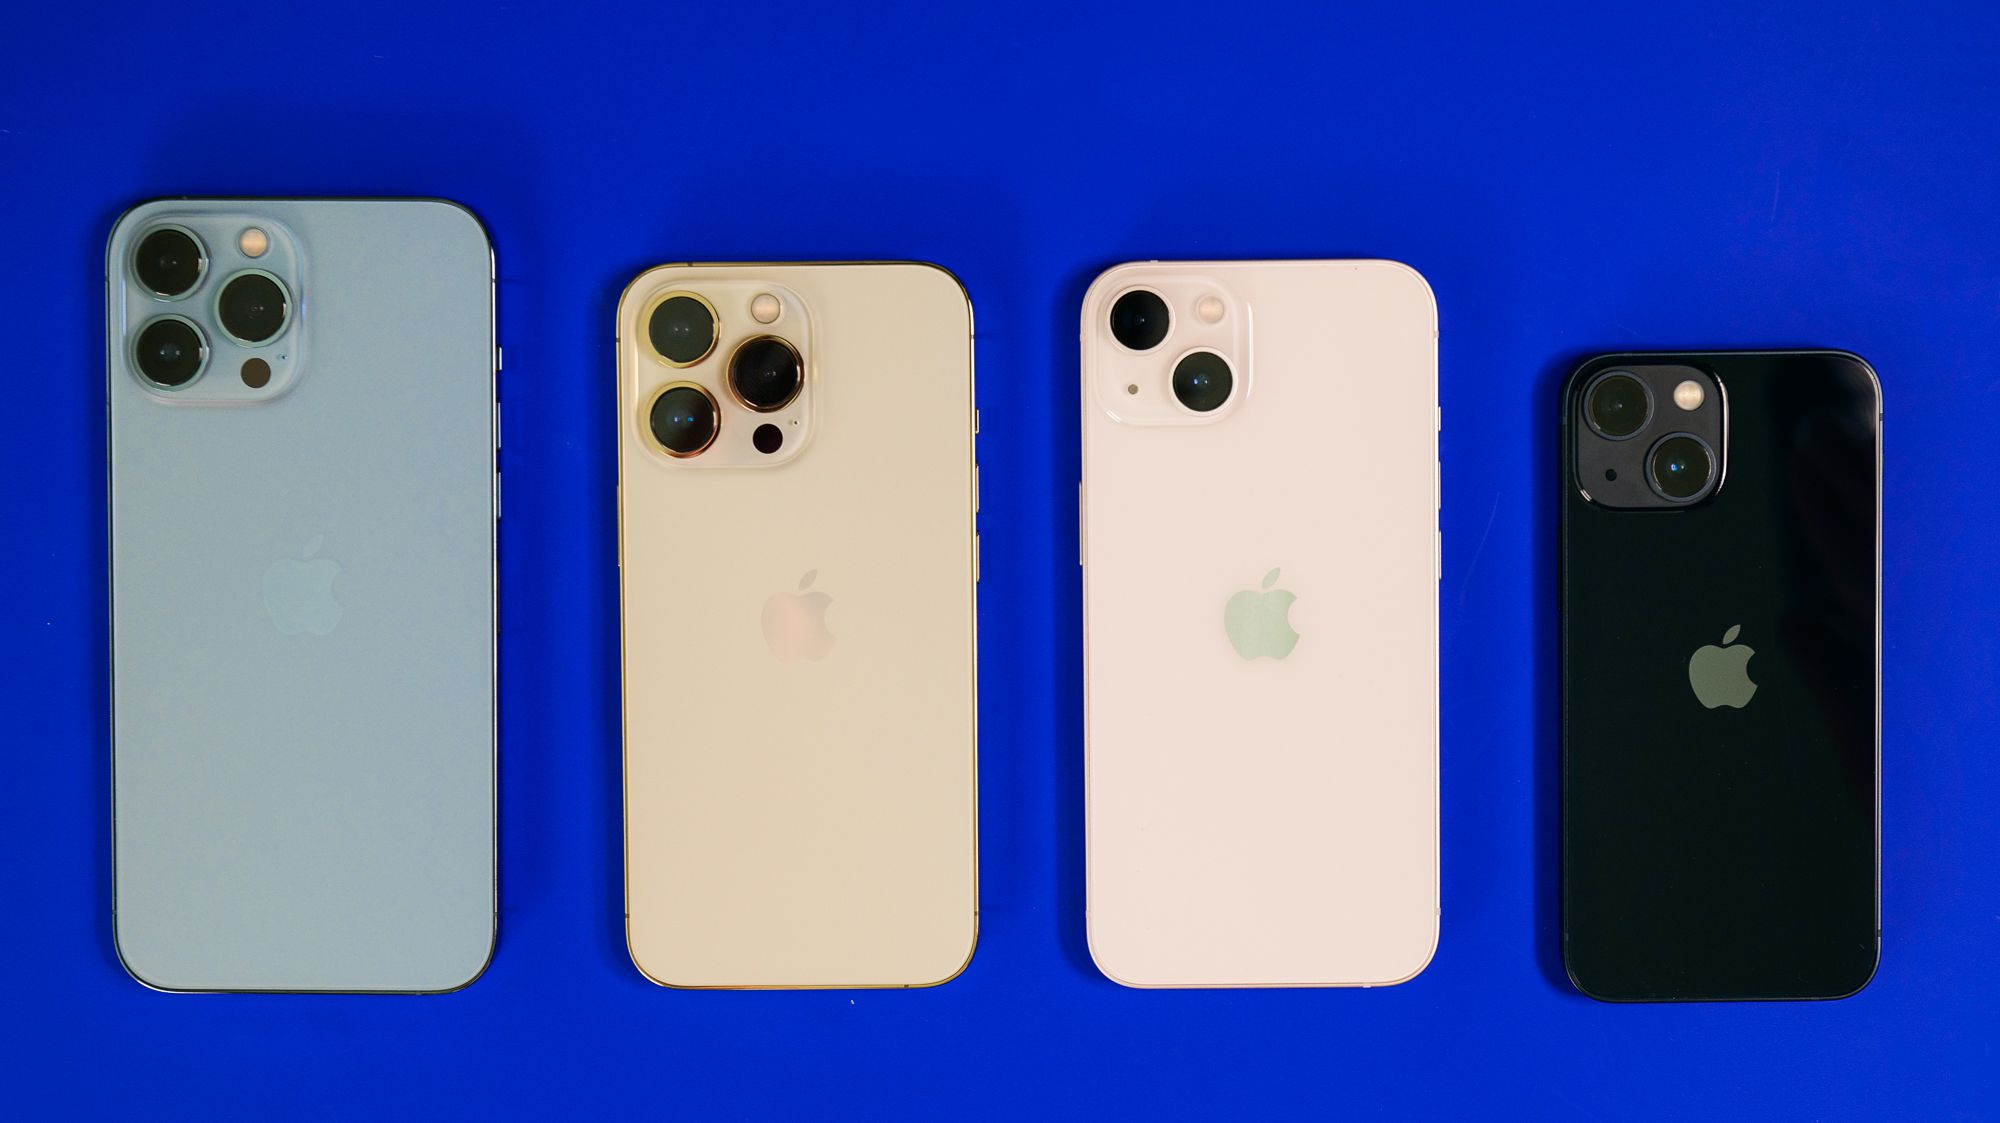 iphone-13-pro-max-pro-13-and-13-mini-cnet-2021-10